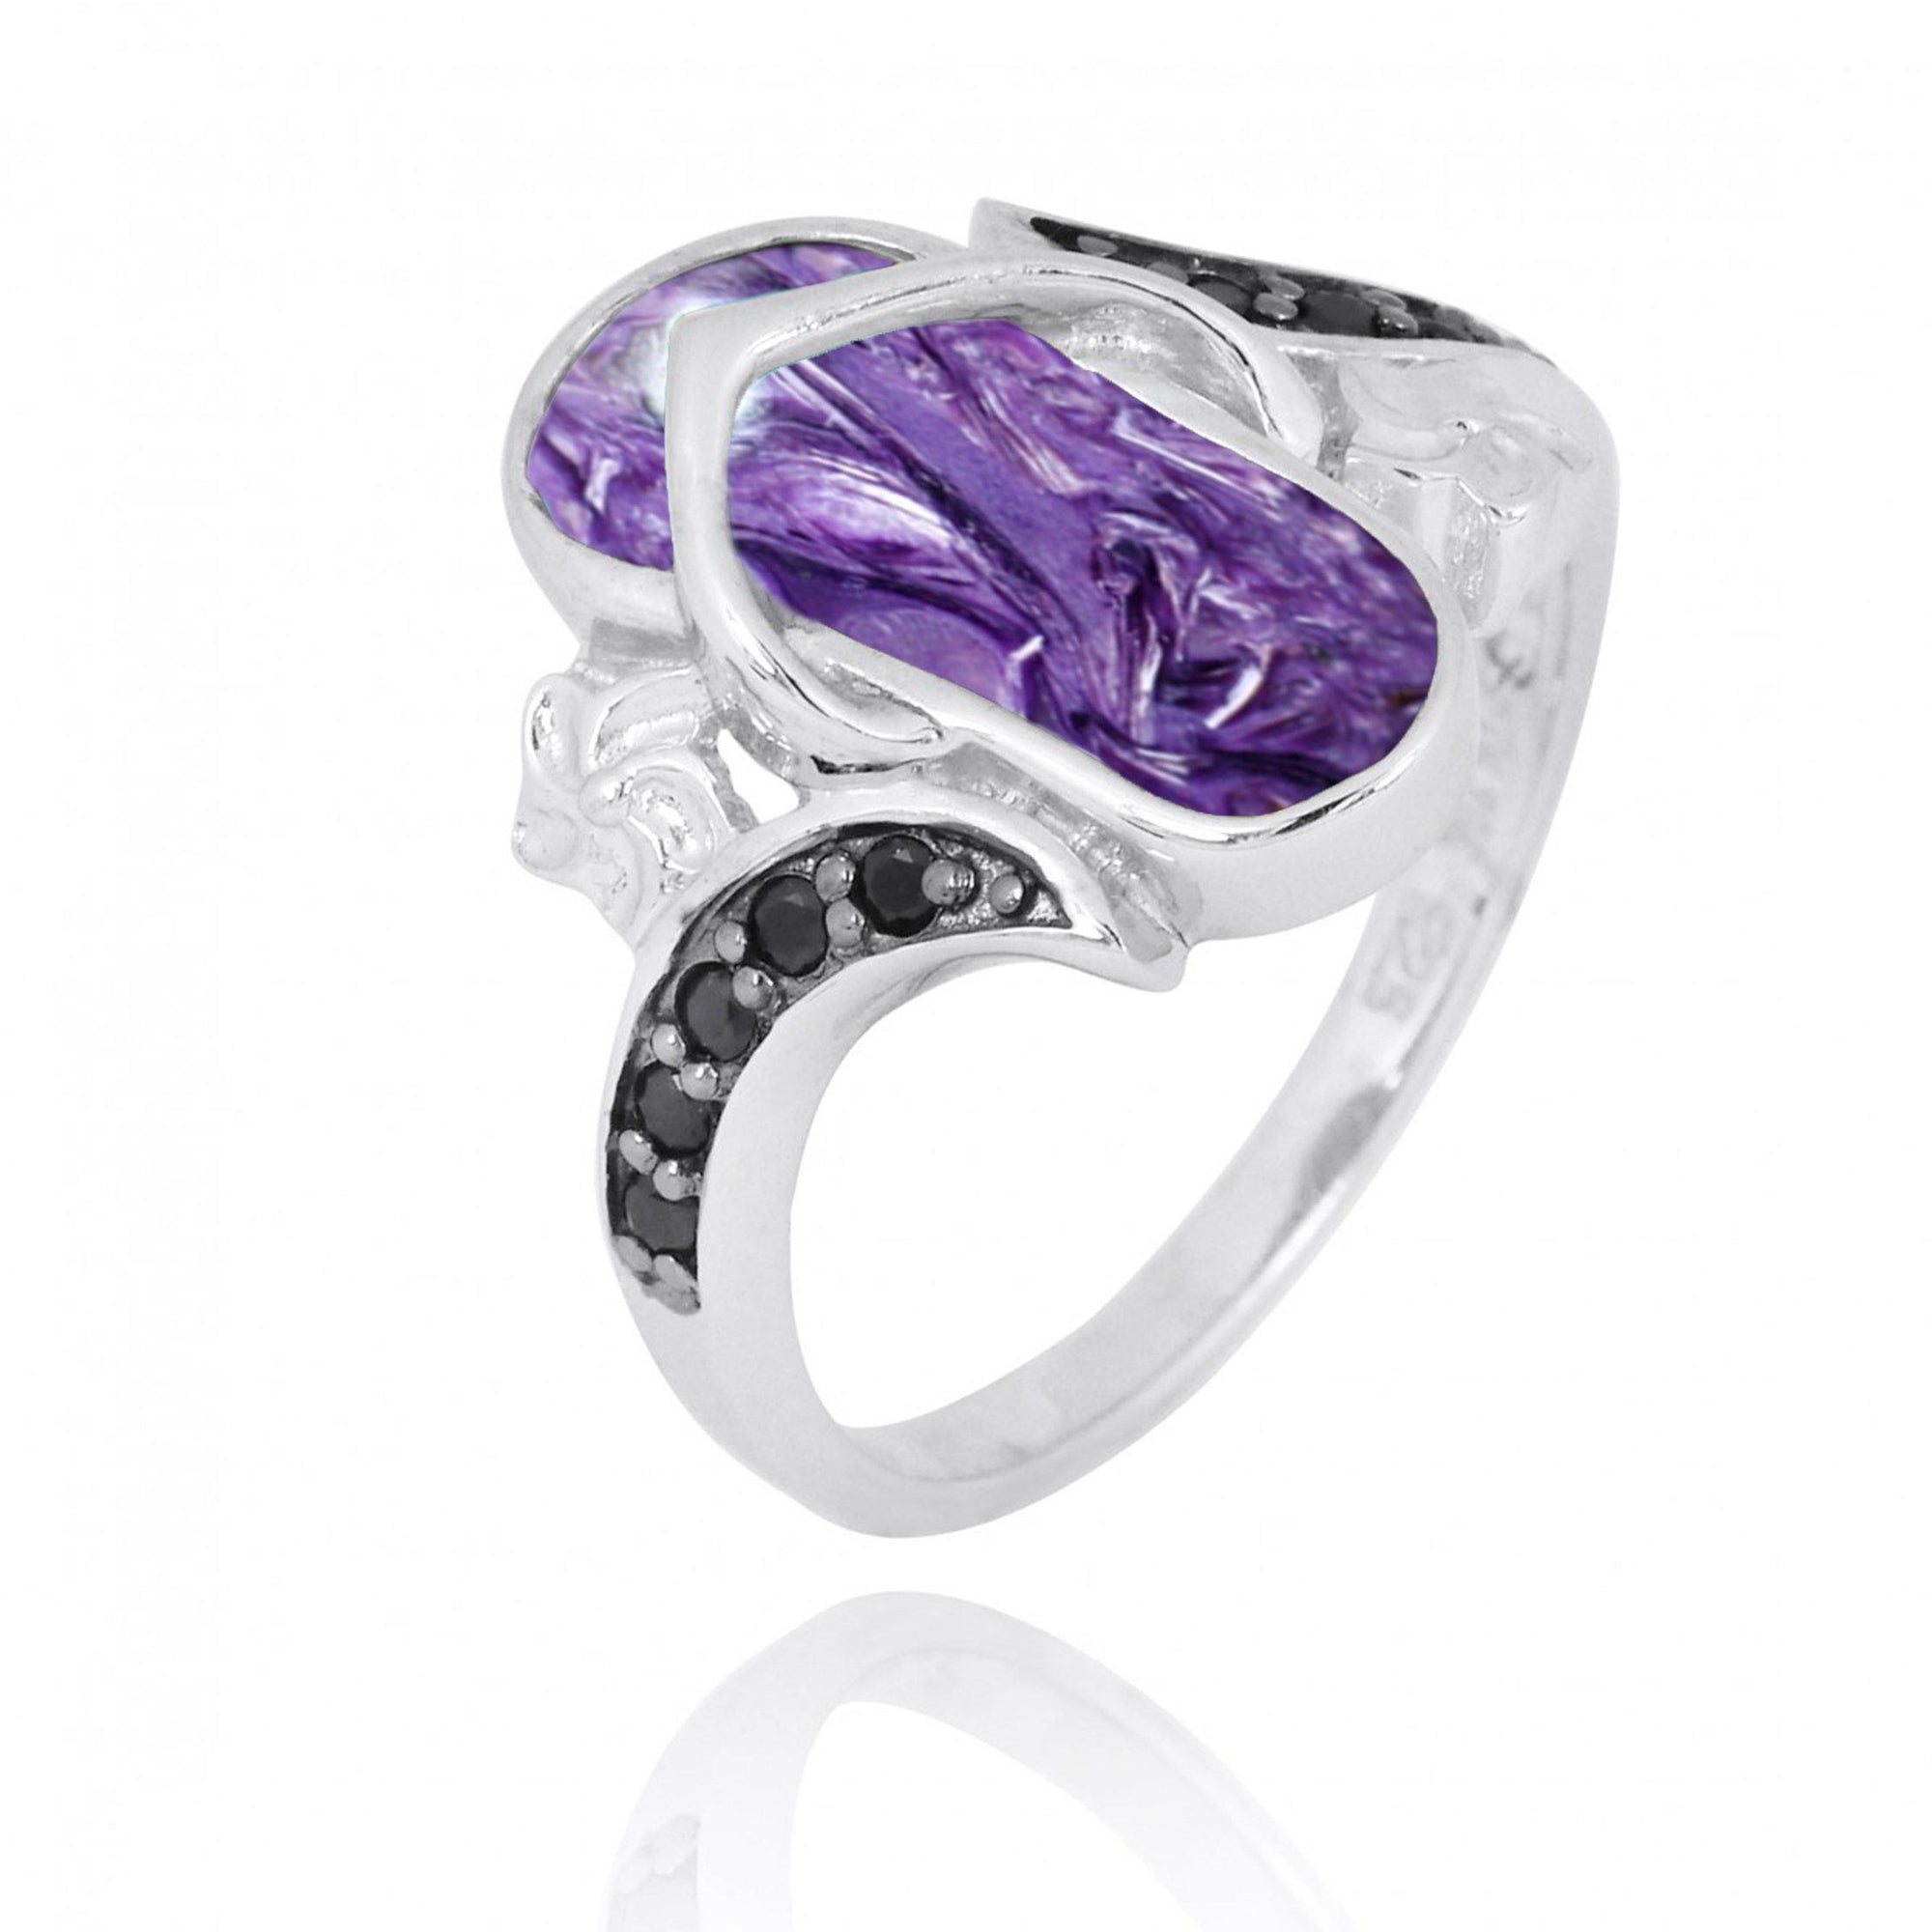 Ring-Flip Flop Ring with Charoite and Black Spinel-Coastal Passion